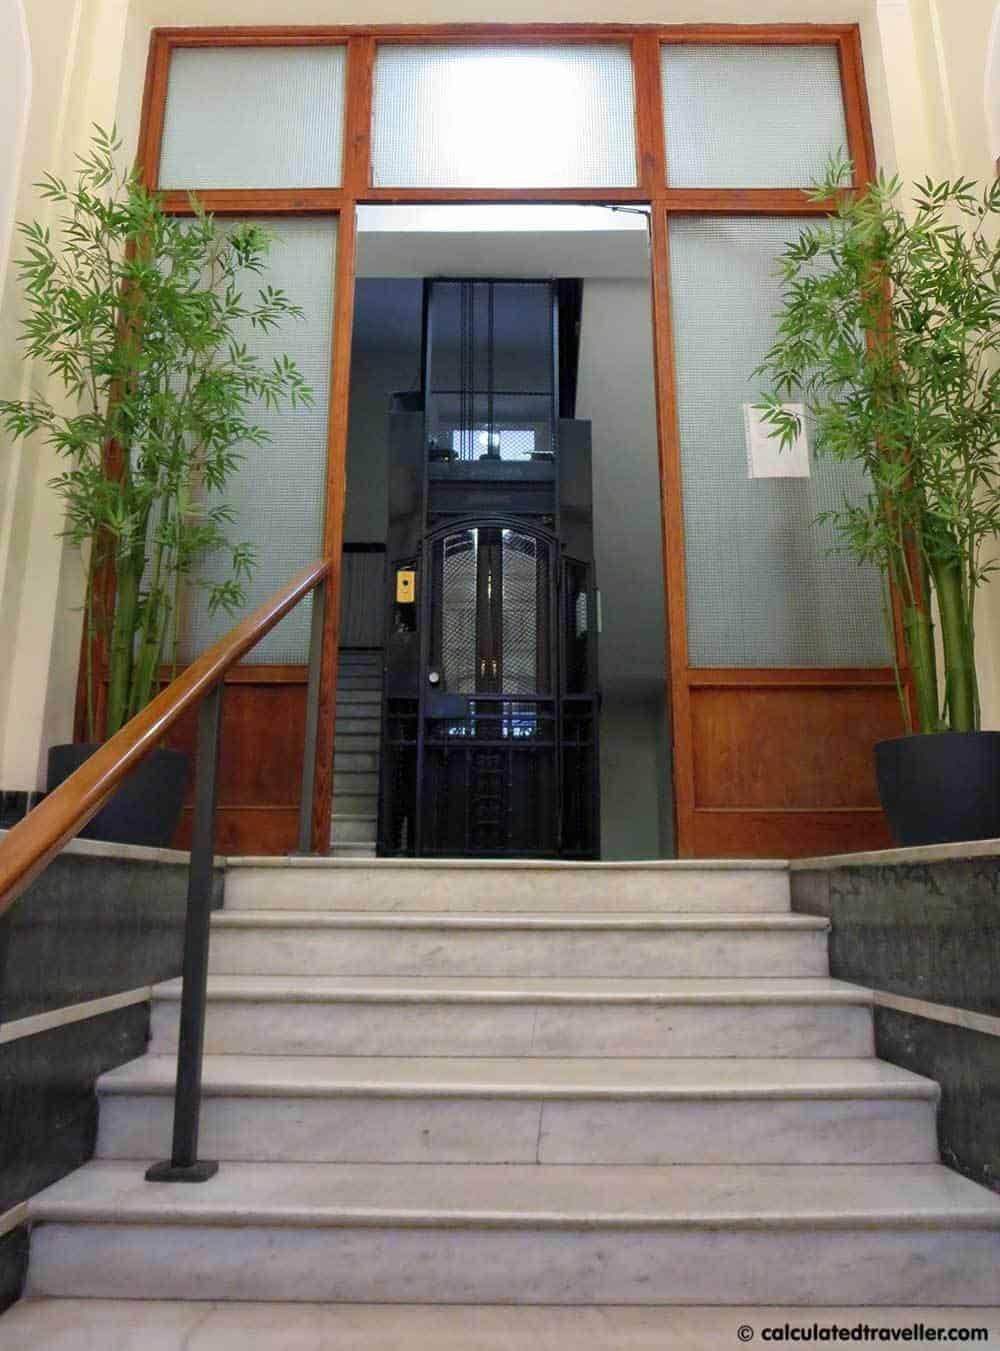 Chroma Tessera Hotel Rome Italy Review - Entry Way - Calculated Traveller